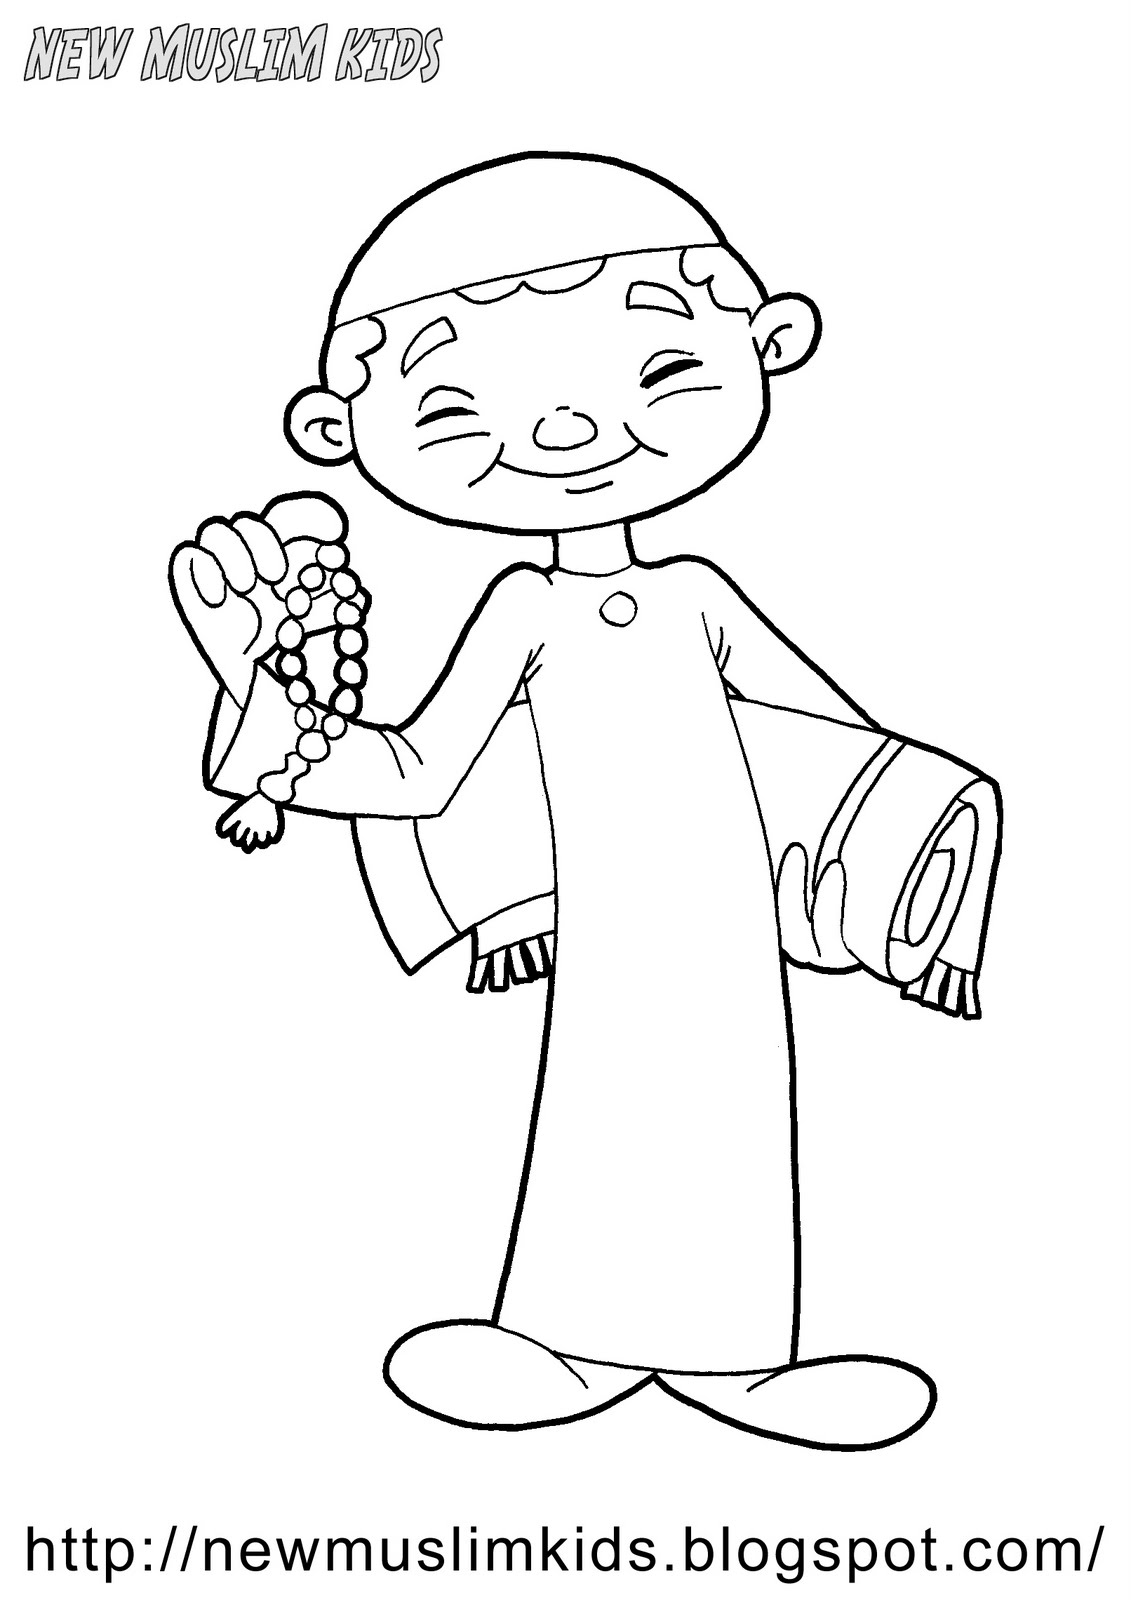 hajj ihram coloring pages - photo#43